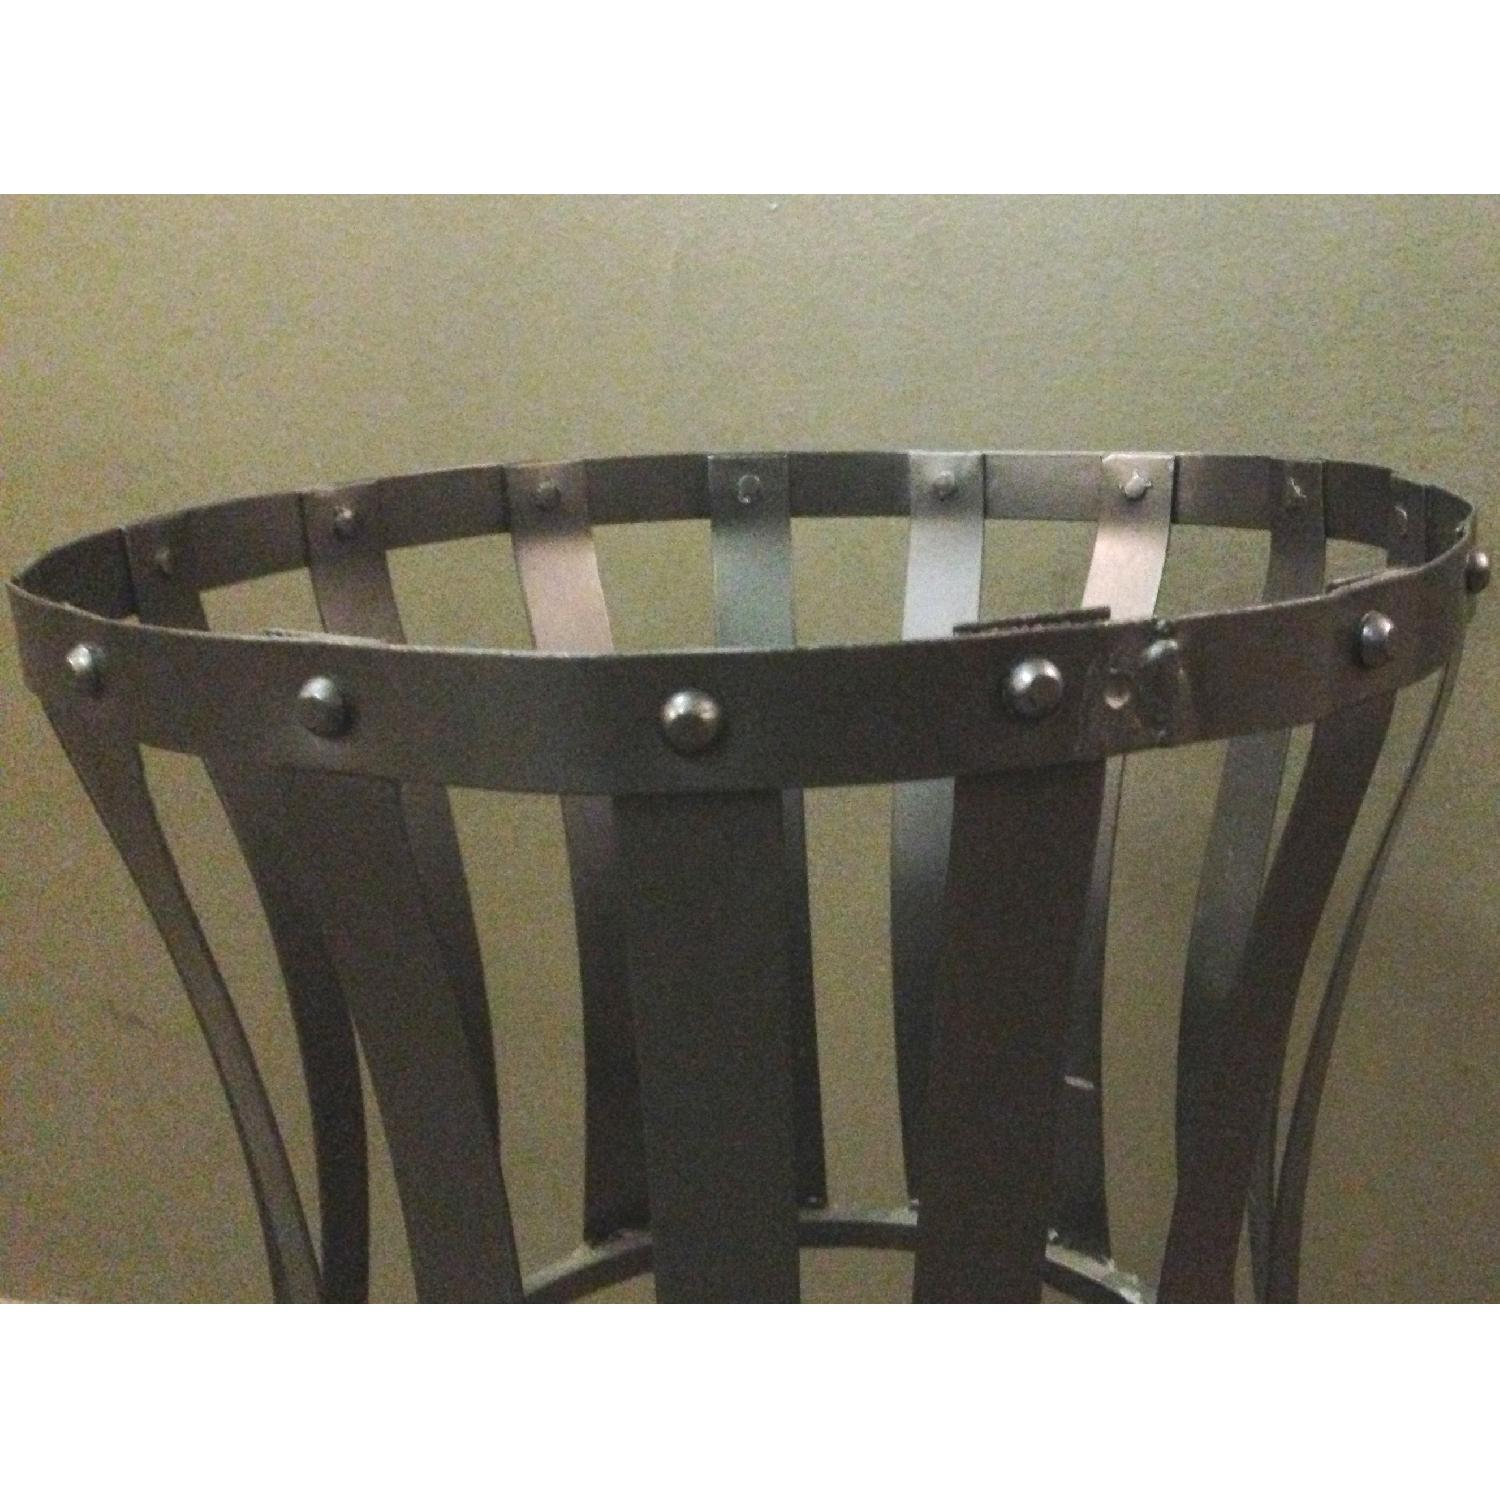 Vintage Wrought Iron Rustic Plant Stand w/ Scroll Legs - image-3